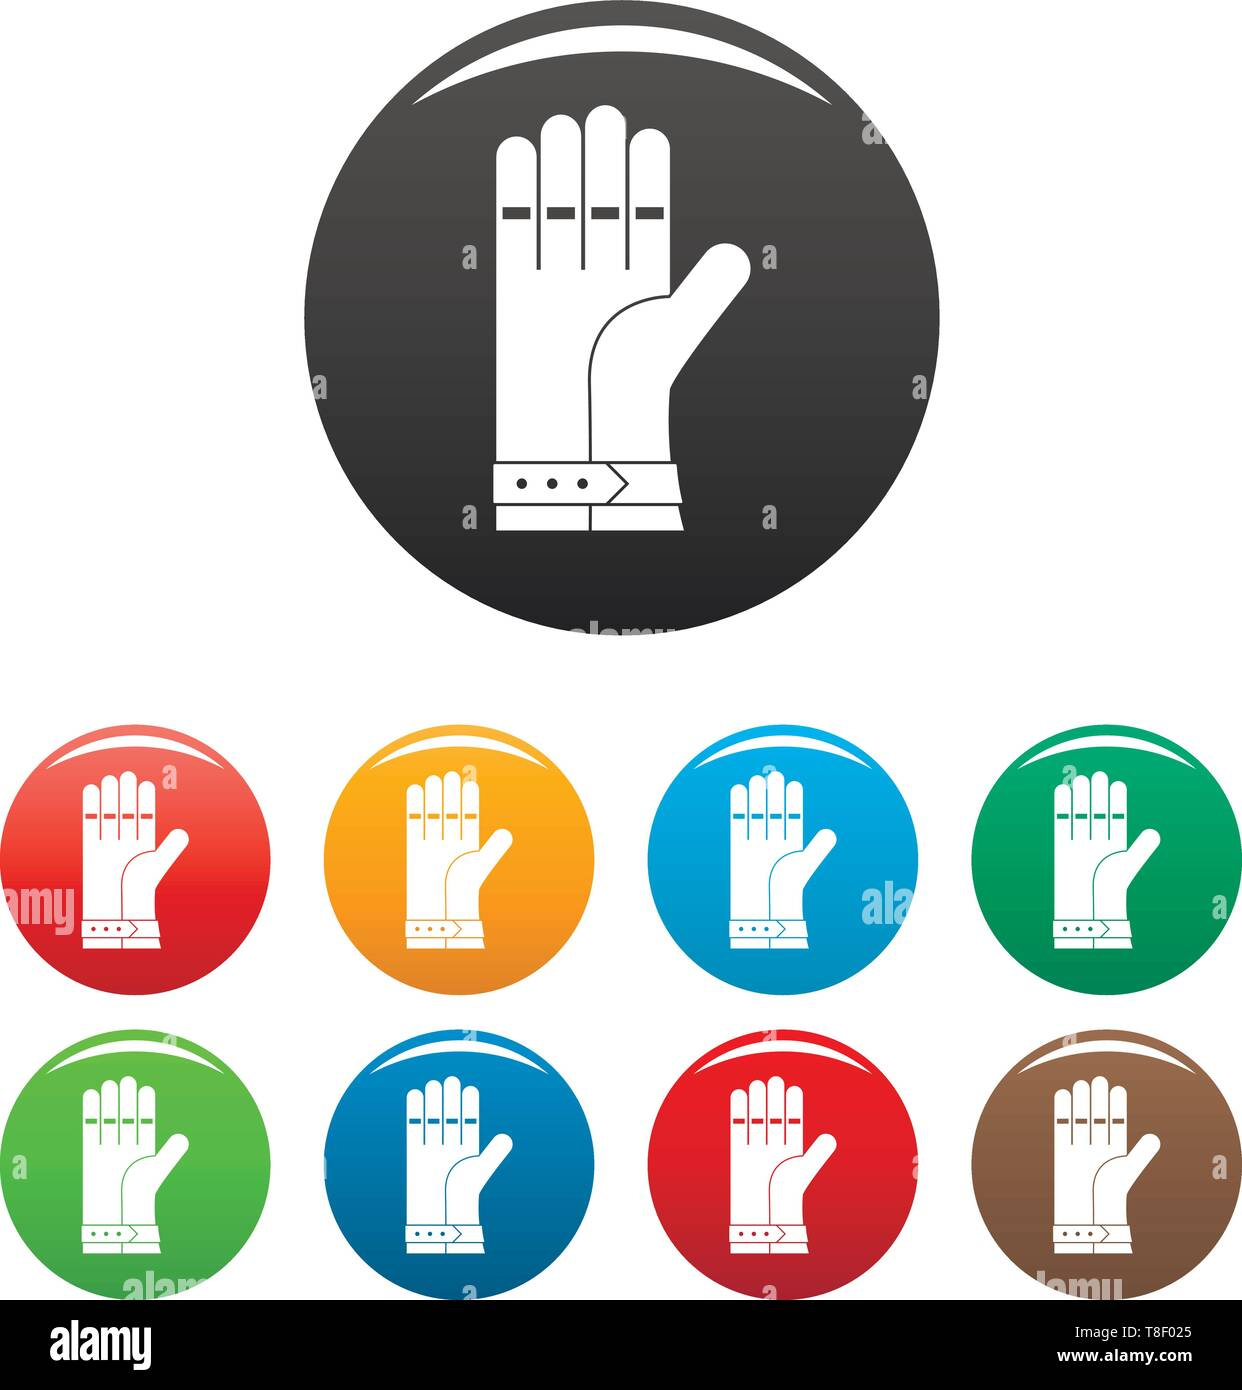 Welding glove icons set 9 color vector isolated on white for any design - Stock Image